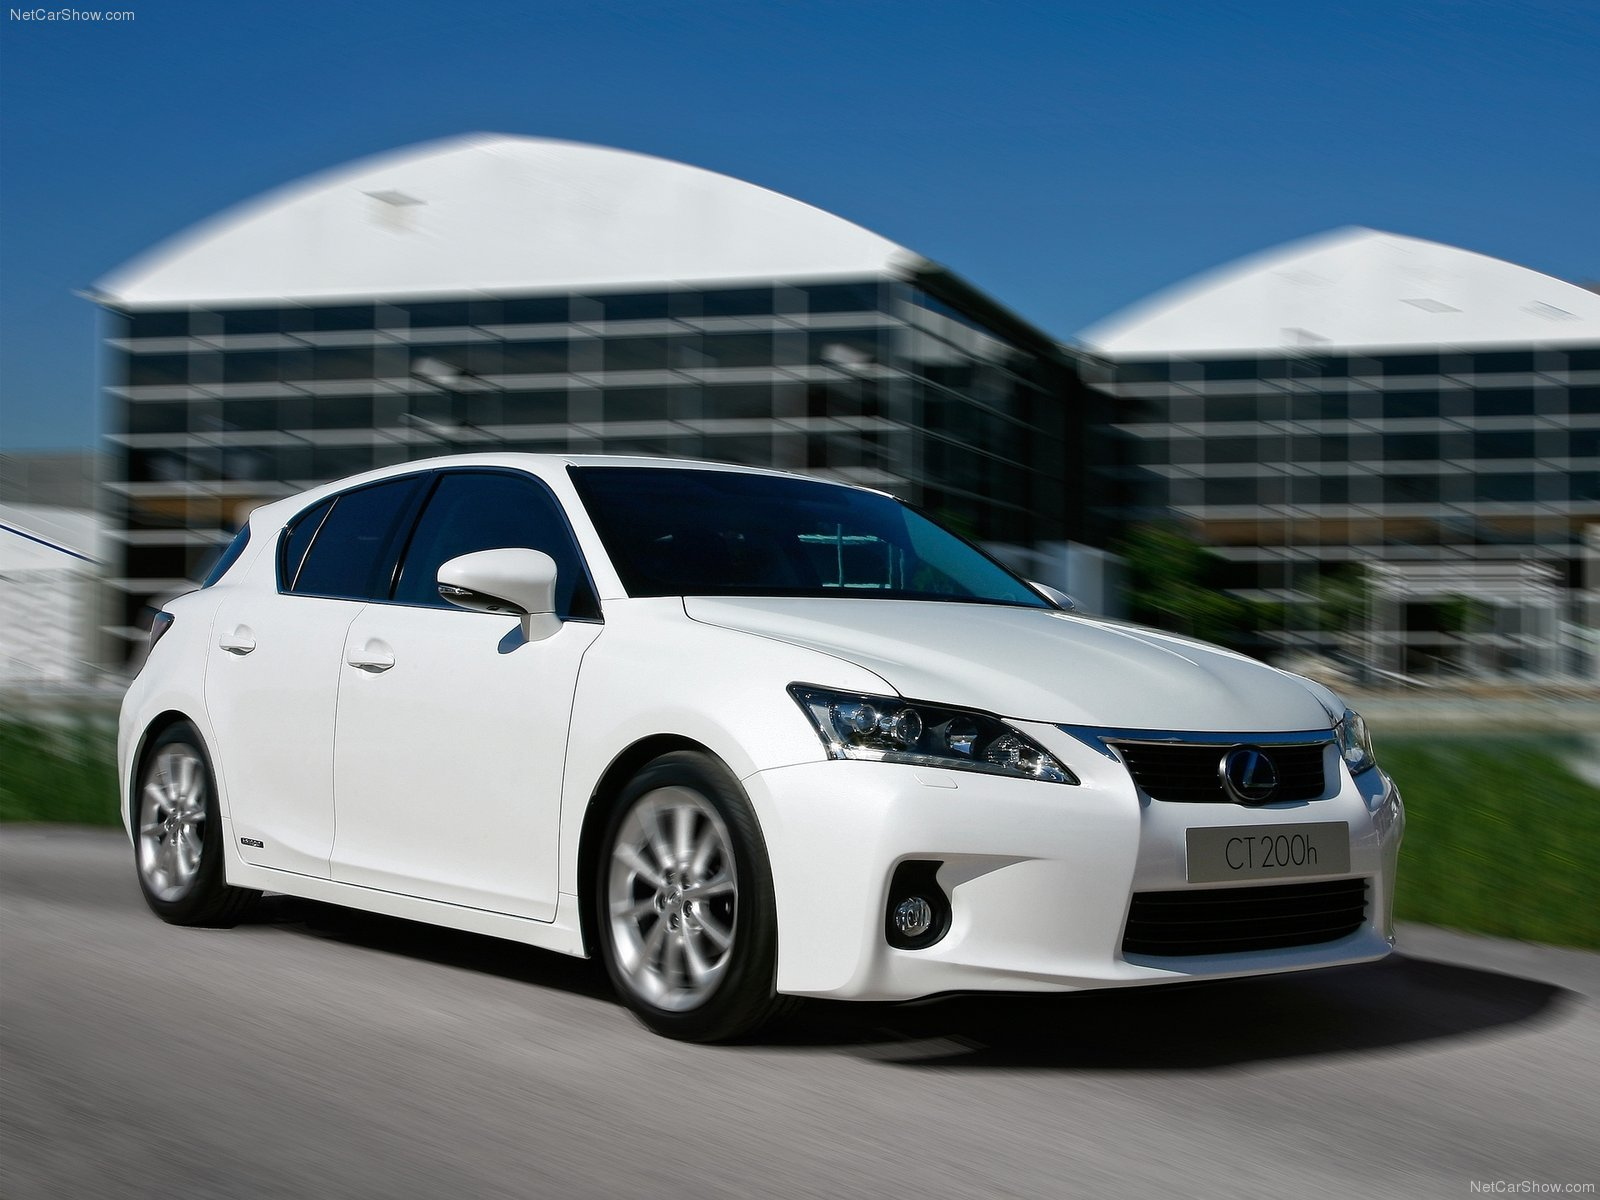 3DTuning of Lexus CT200h 5 Door Hatchback 2011 3DTuning